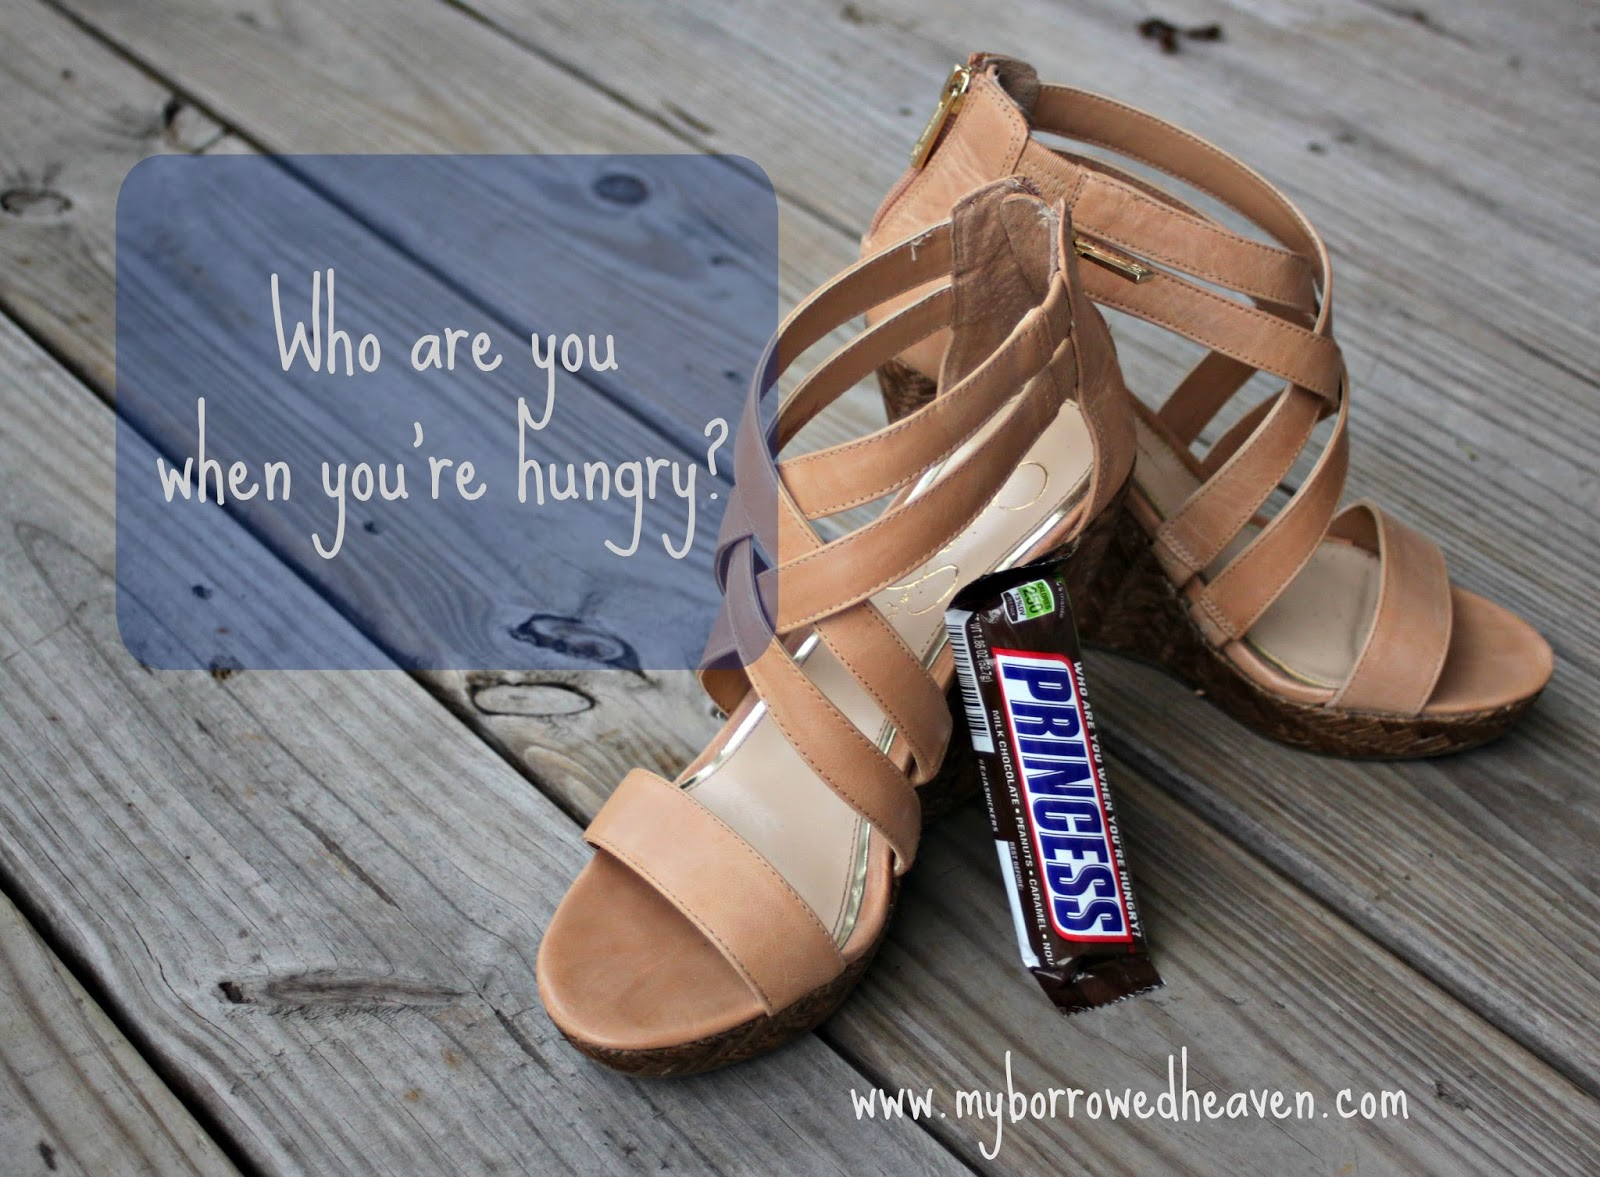 borrowed heaven keep the party going with snickers